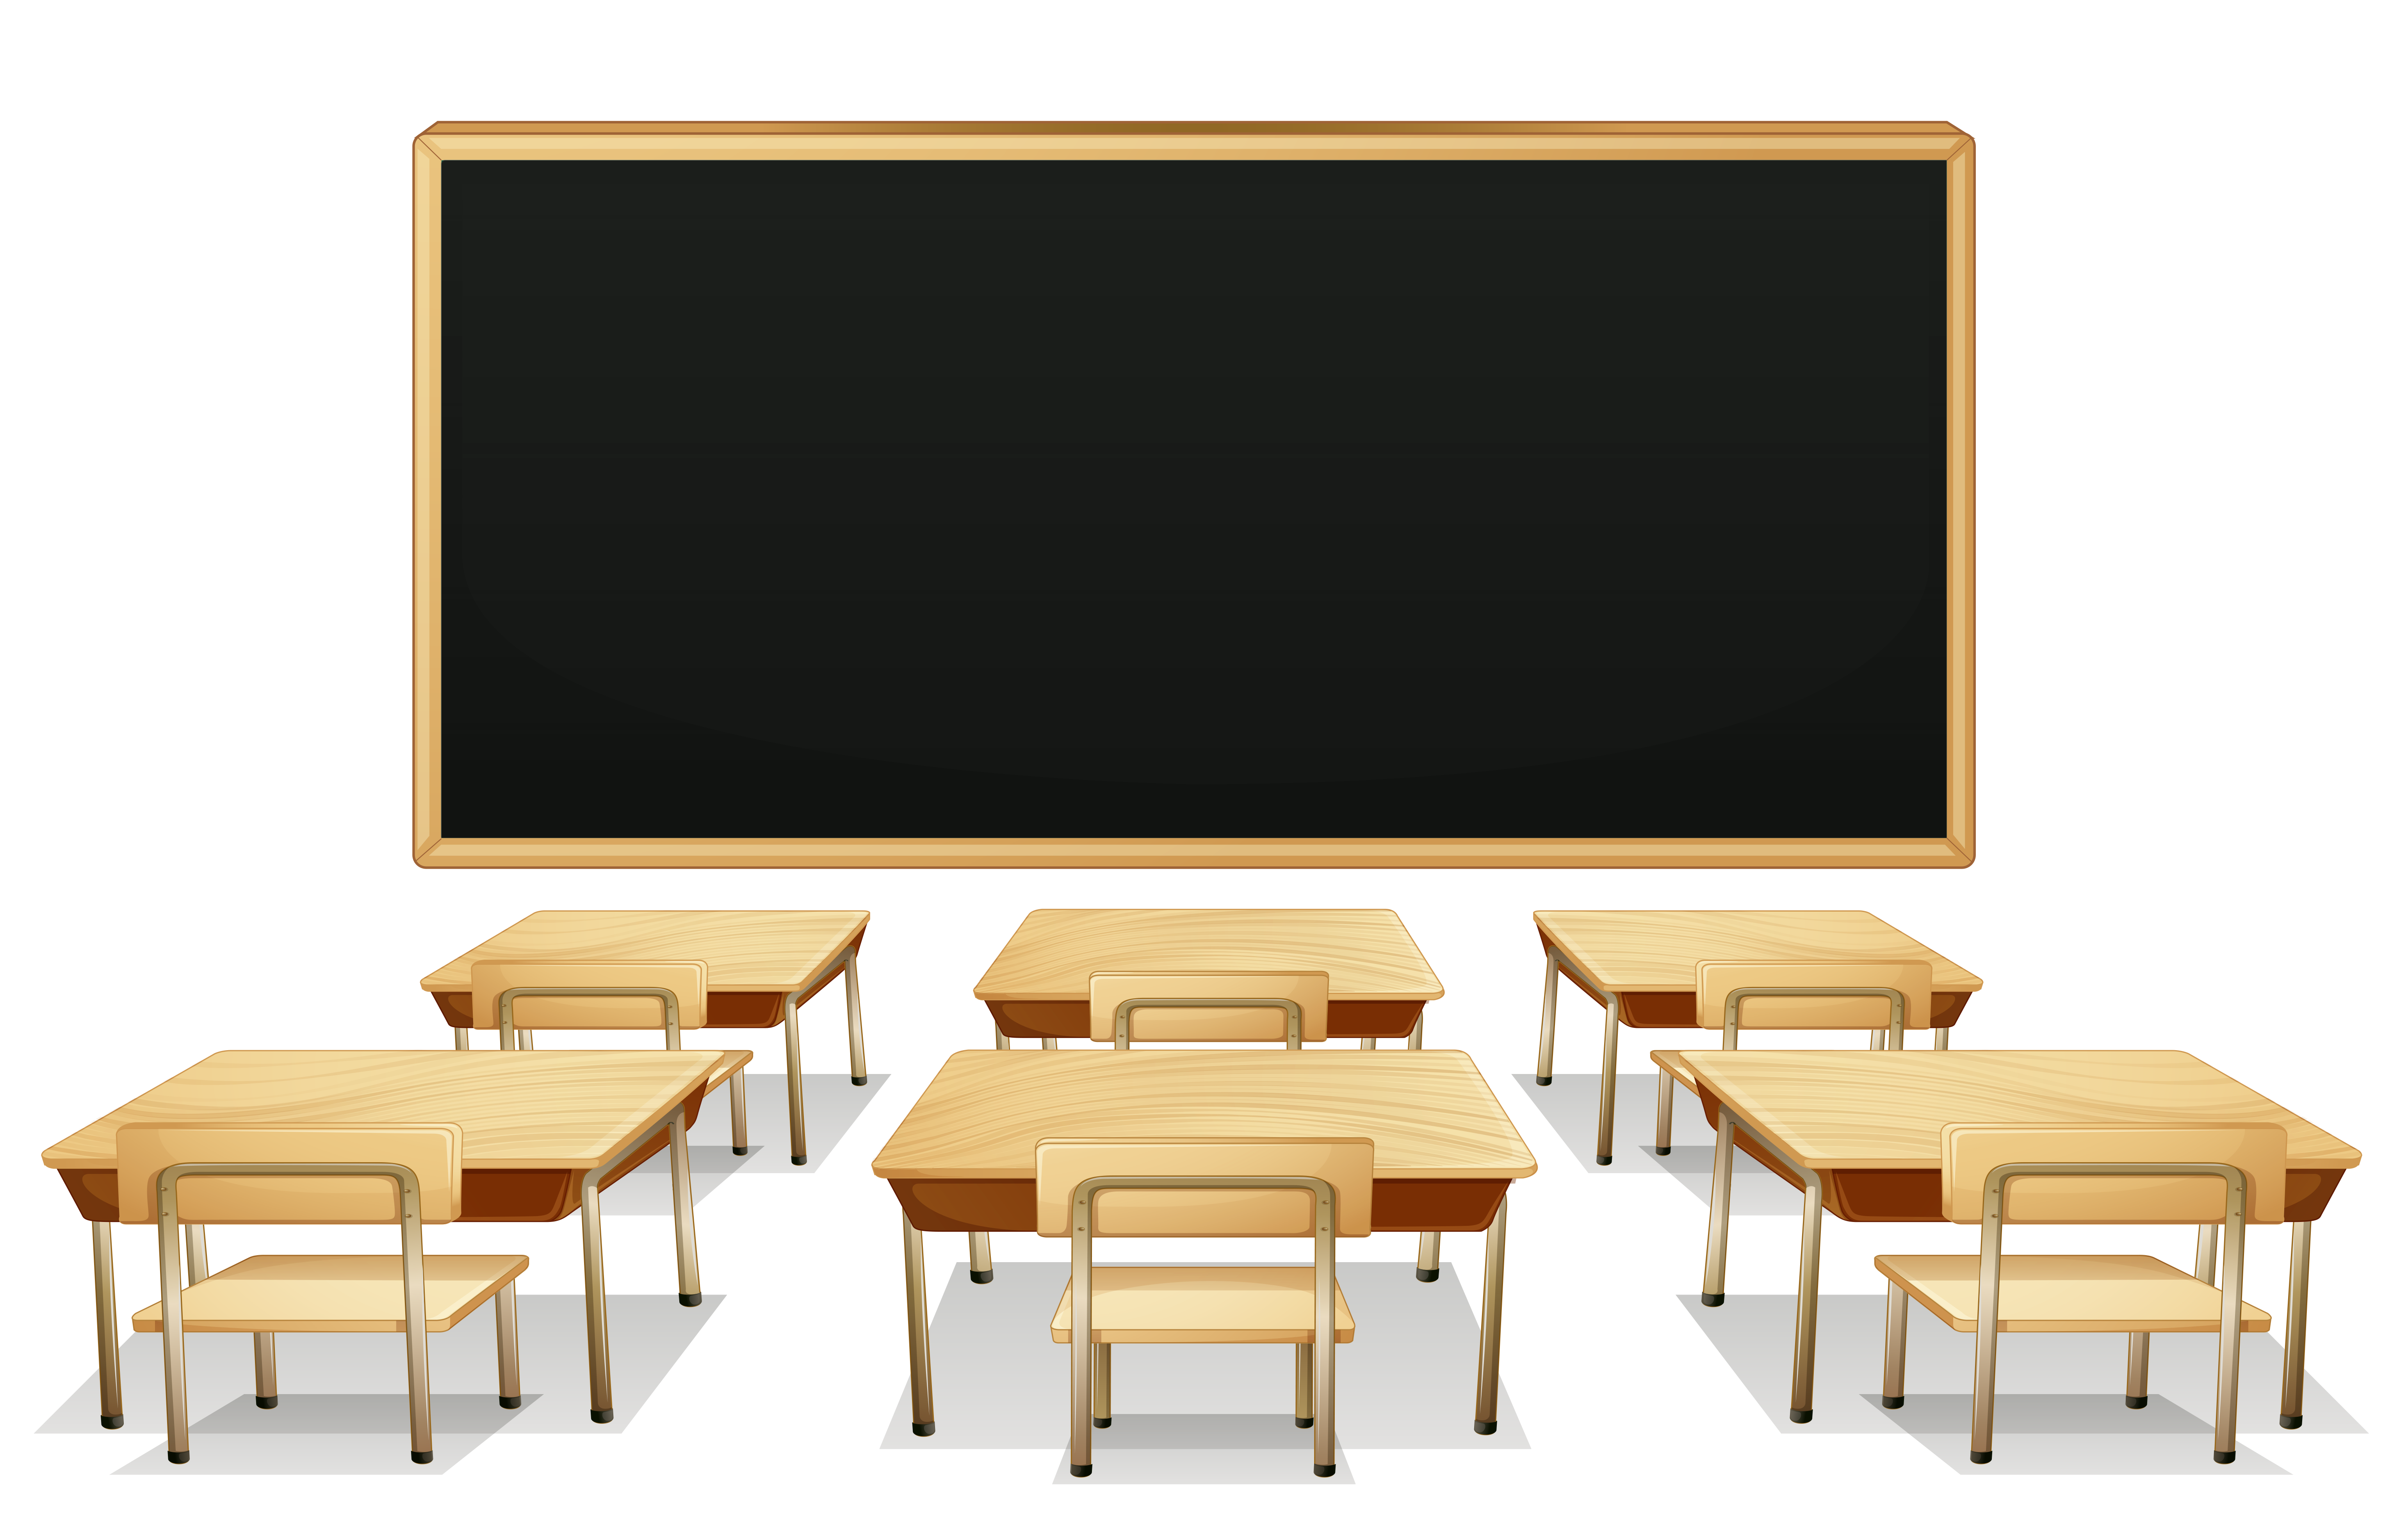 svg transparent stock School classroom with and. Blackboard clipart language class